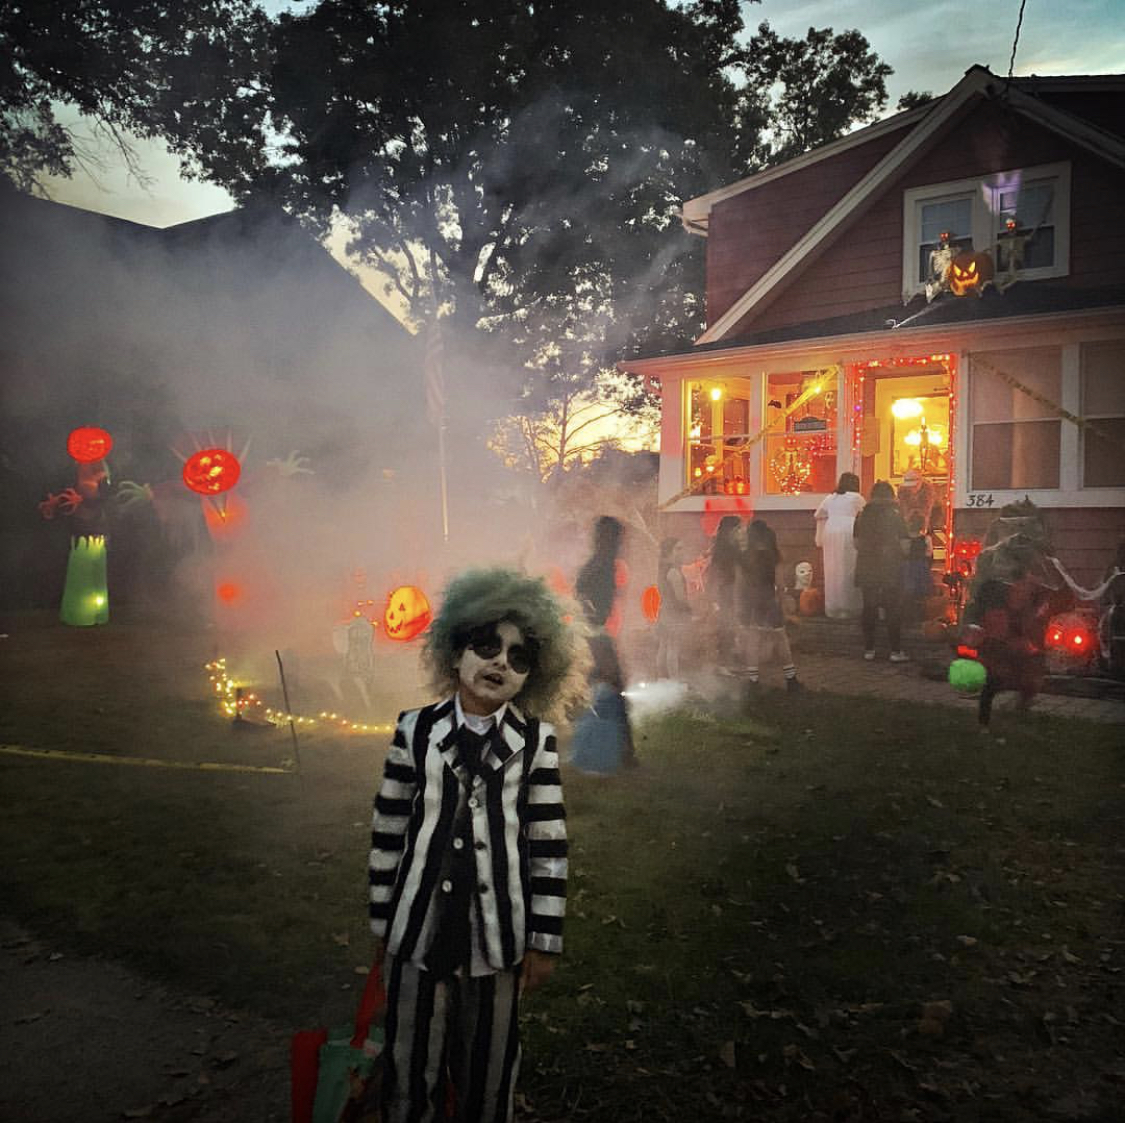 Ayman, dressed as Beetlejuice, out trick-or-treating with friends and family in Dunellen, NJ. October 31, 2018. Pic courtesy: Zoshia Minto.